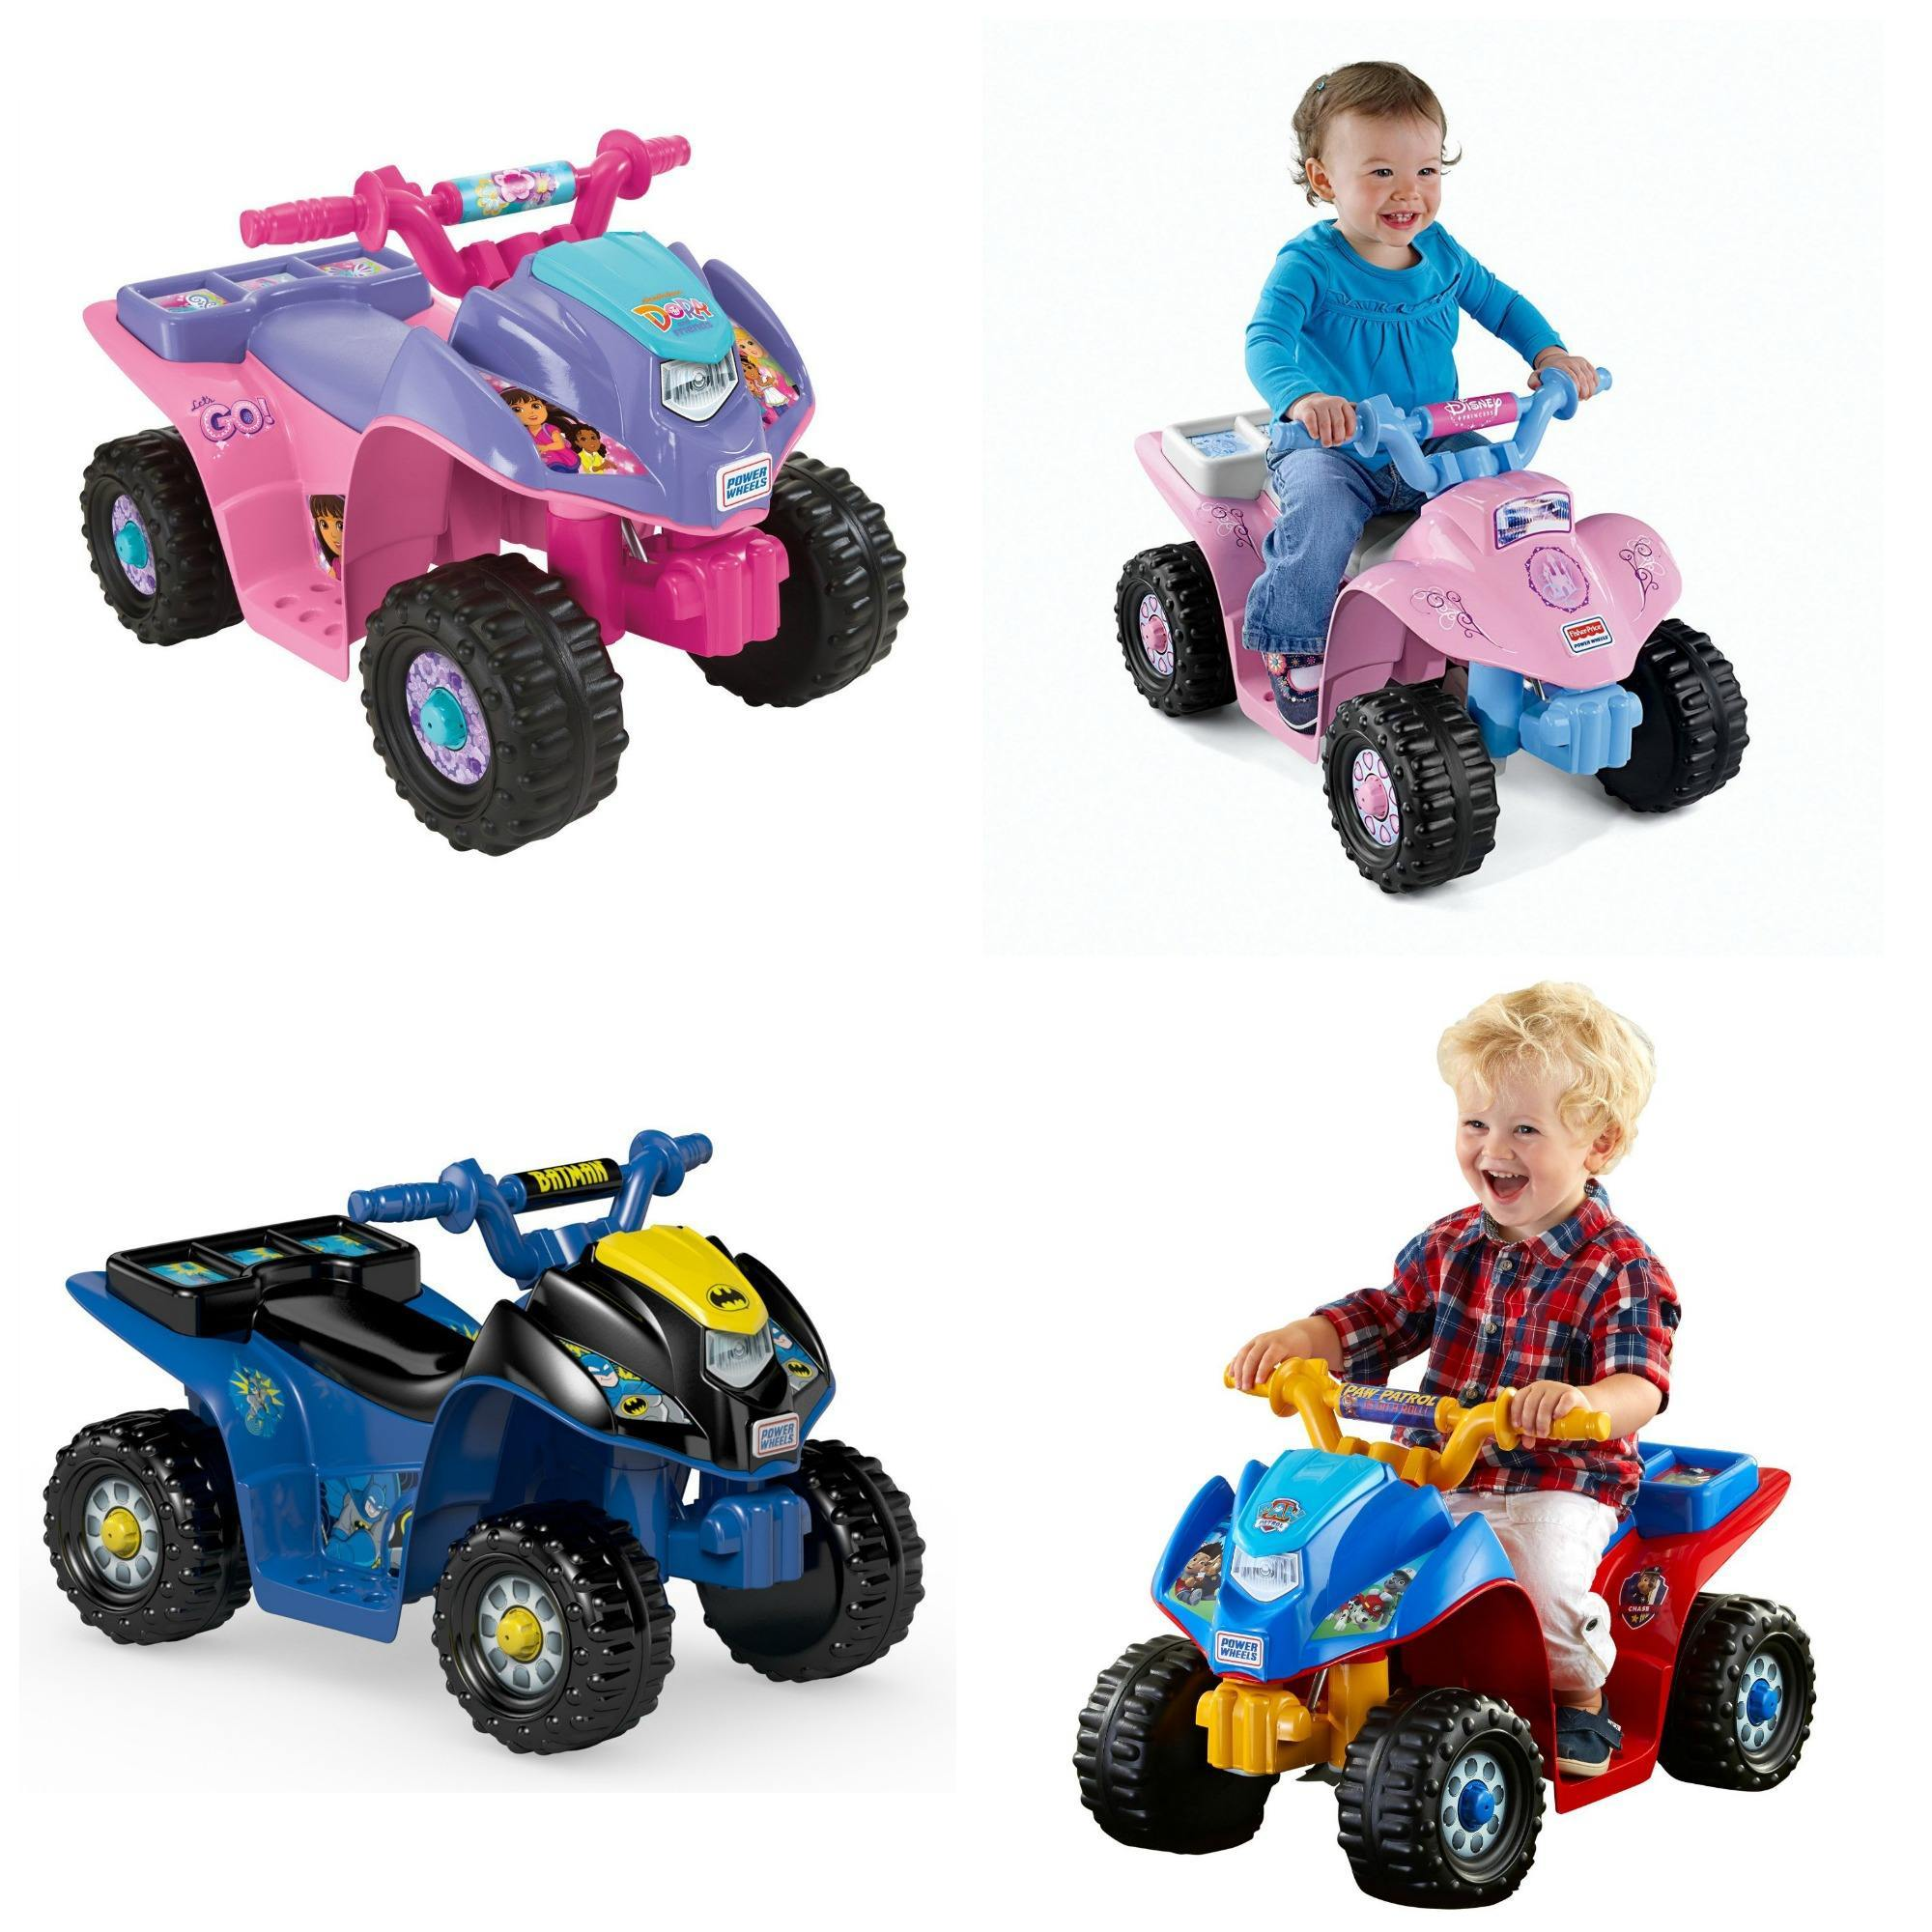 More Quads for 1 year olds